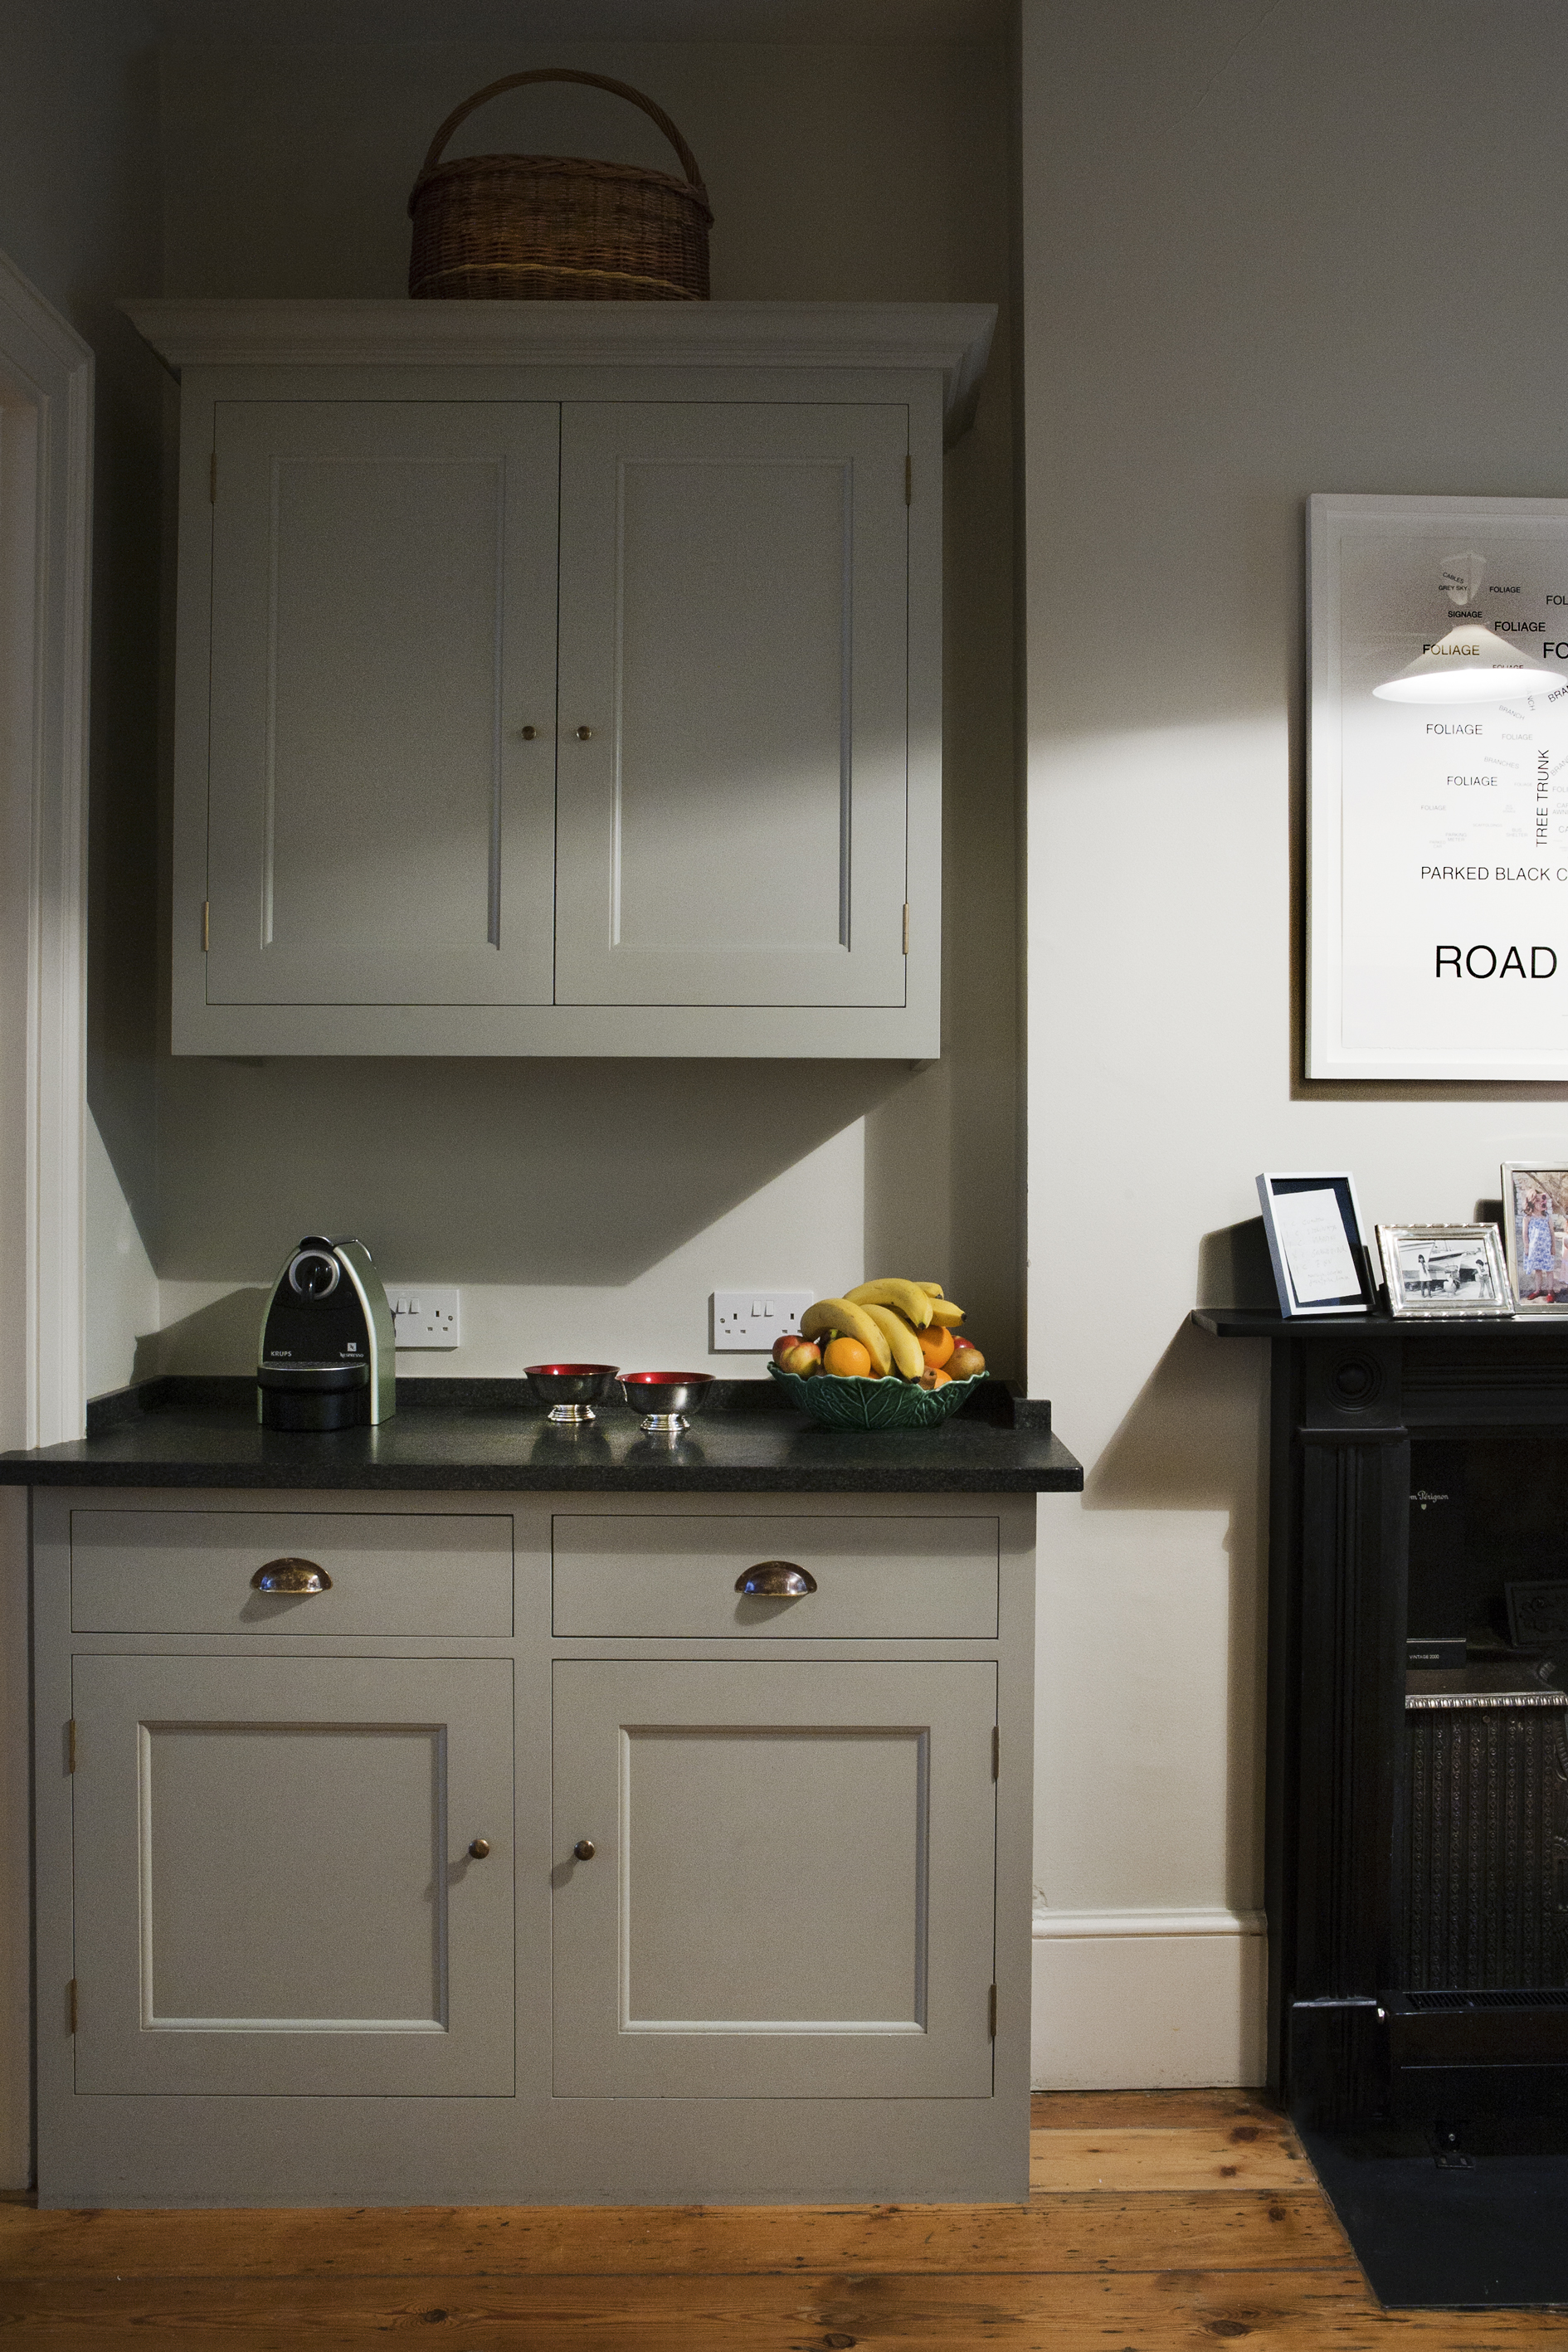 Kitchen cabinetry in a Georgian property